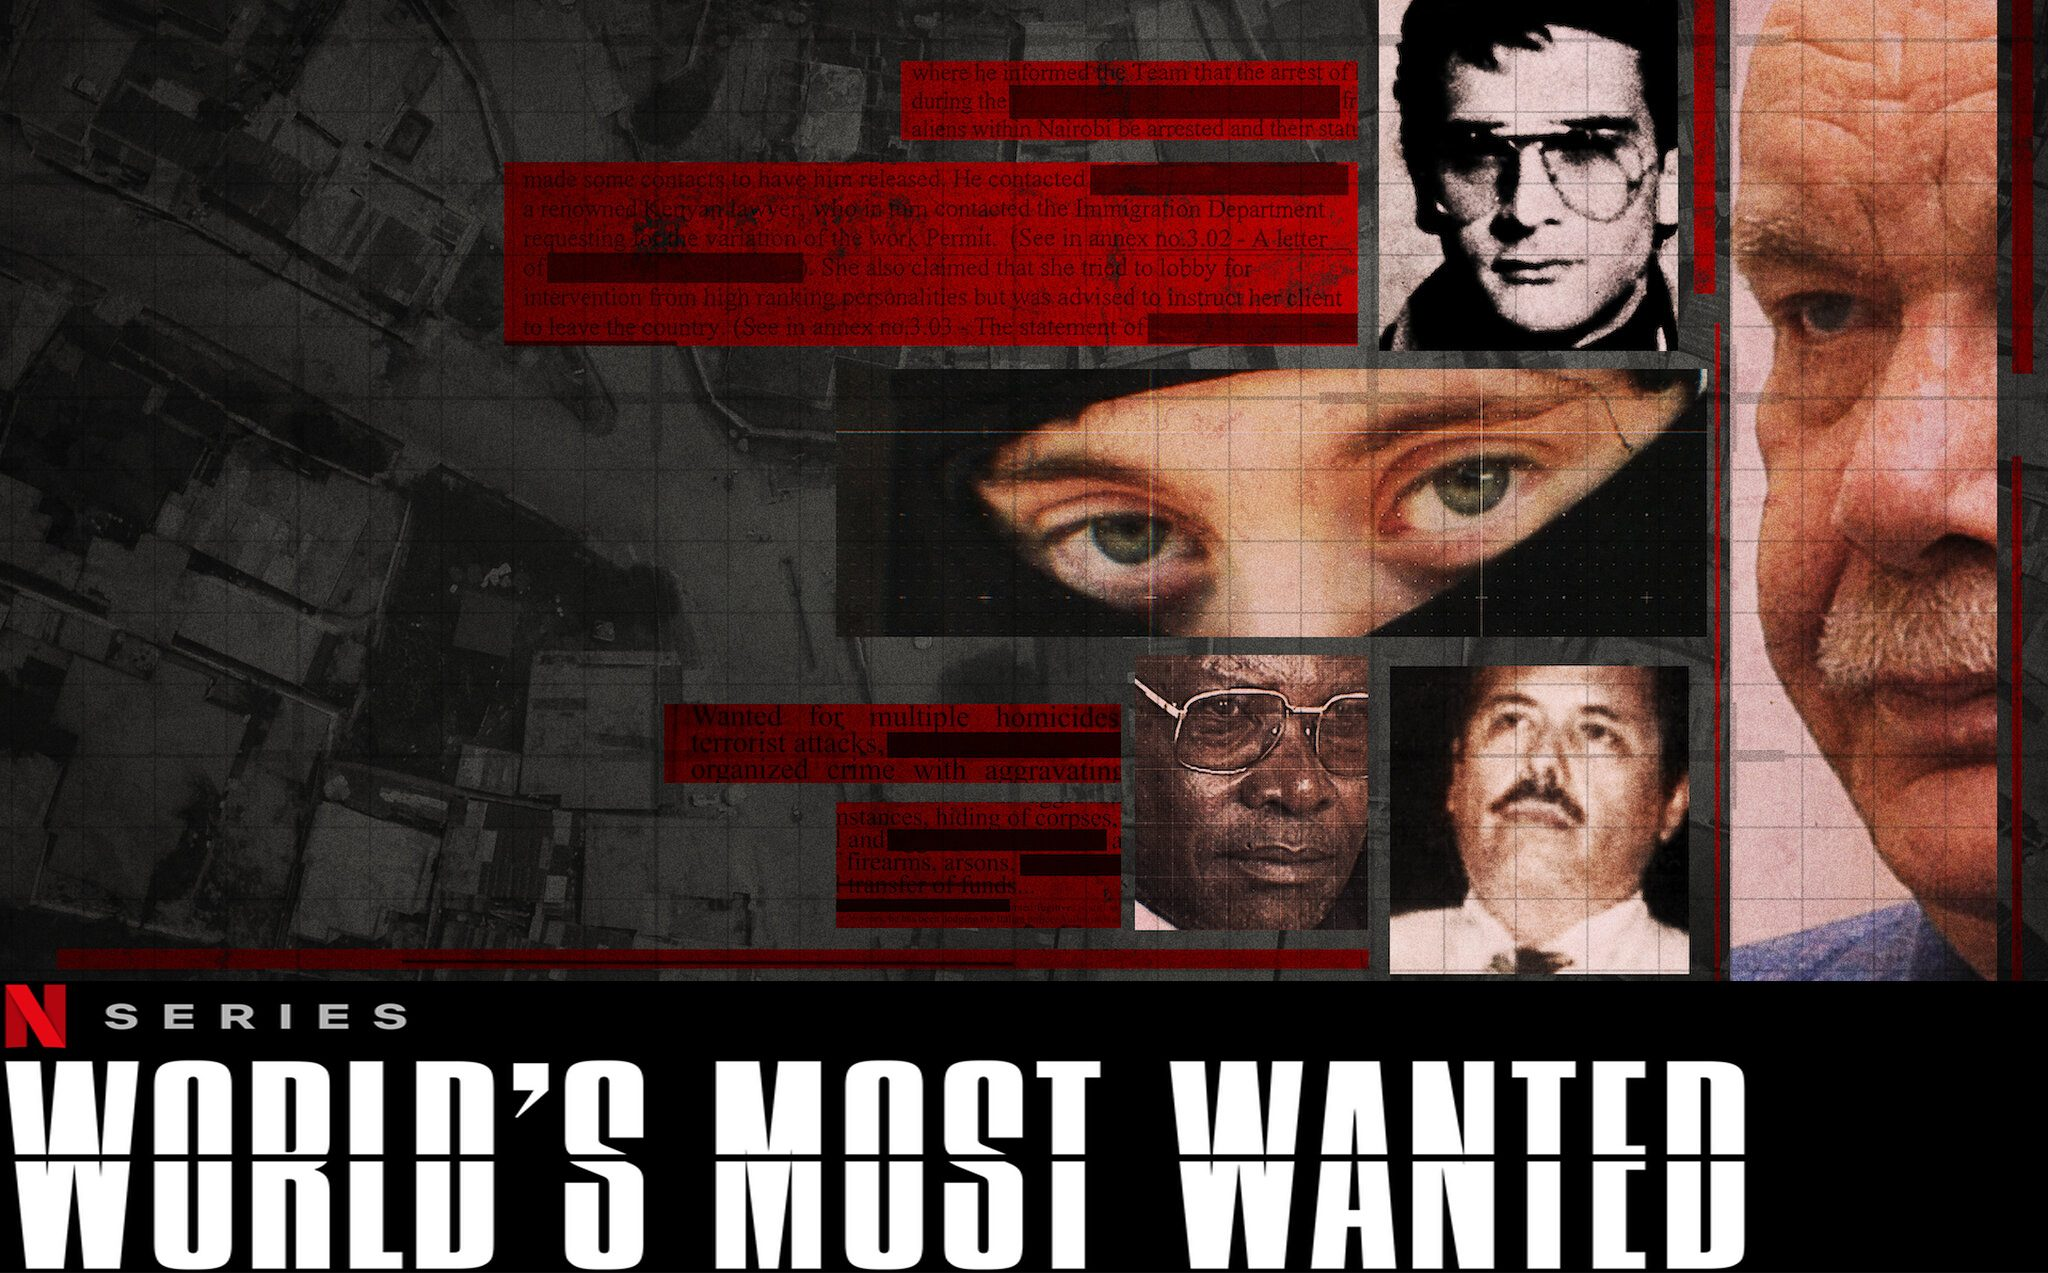 World's-Most-Wanted-Documentary-Web-Series-Is-Streaming-Online-Watch-on-Netflix-With-English-Subtitles,-Release-Date-5th-August-2020